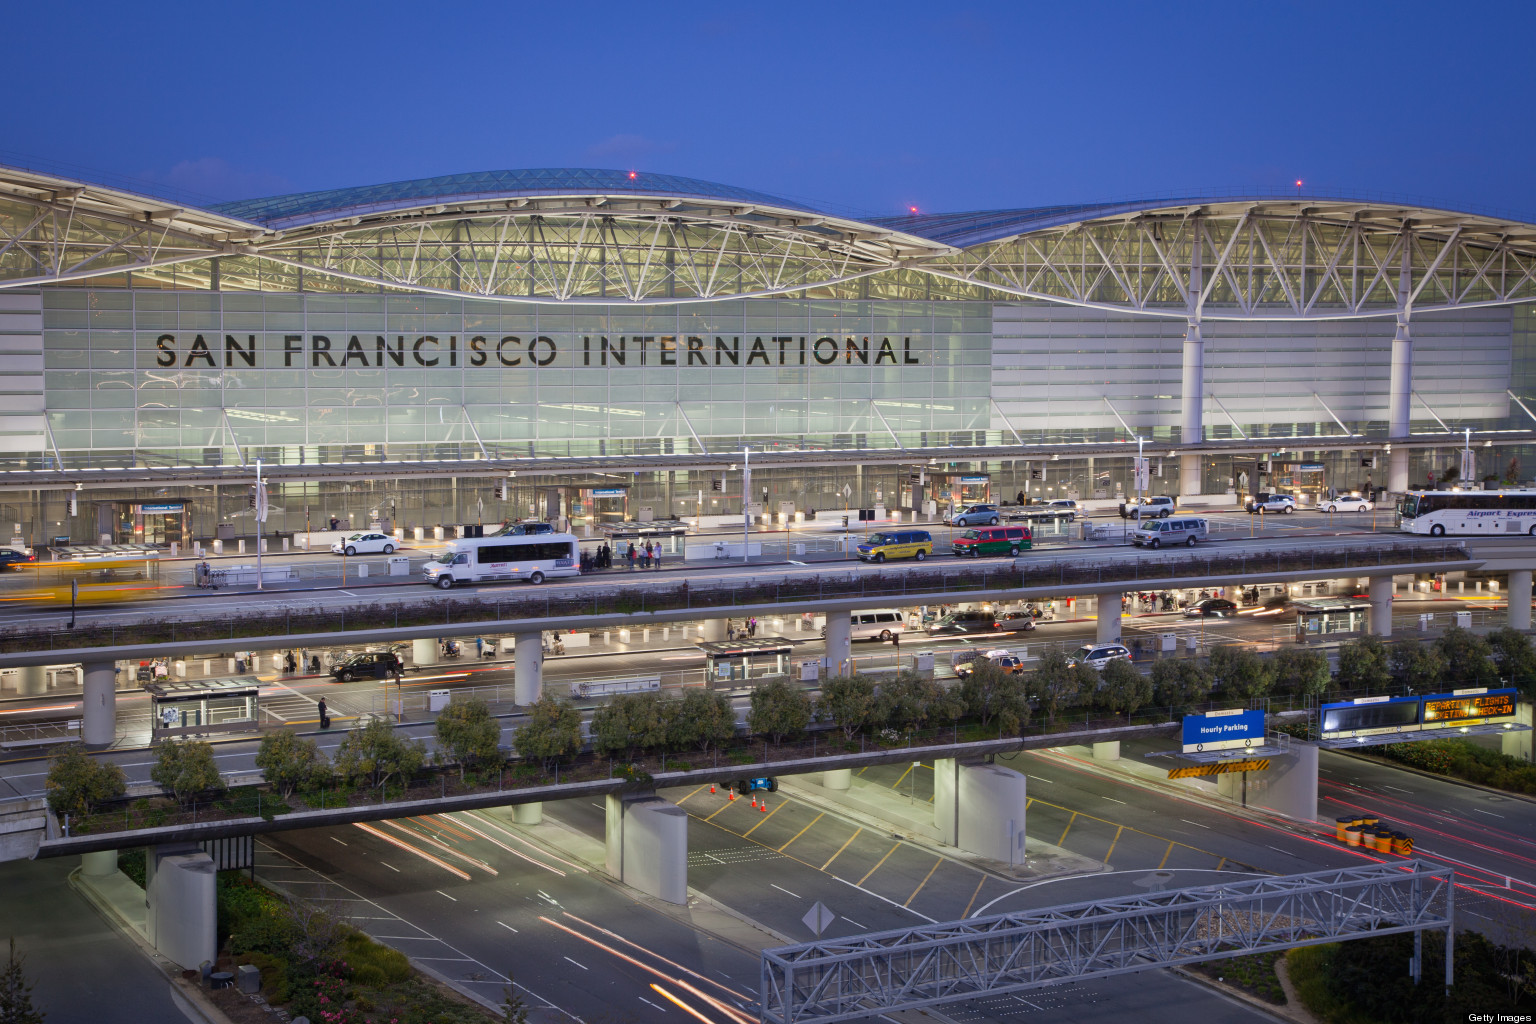 UH OH: SFO Employee In Big Trouble